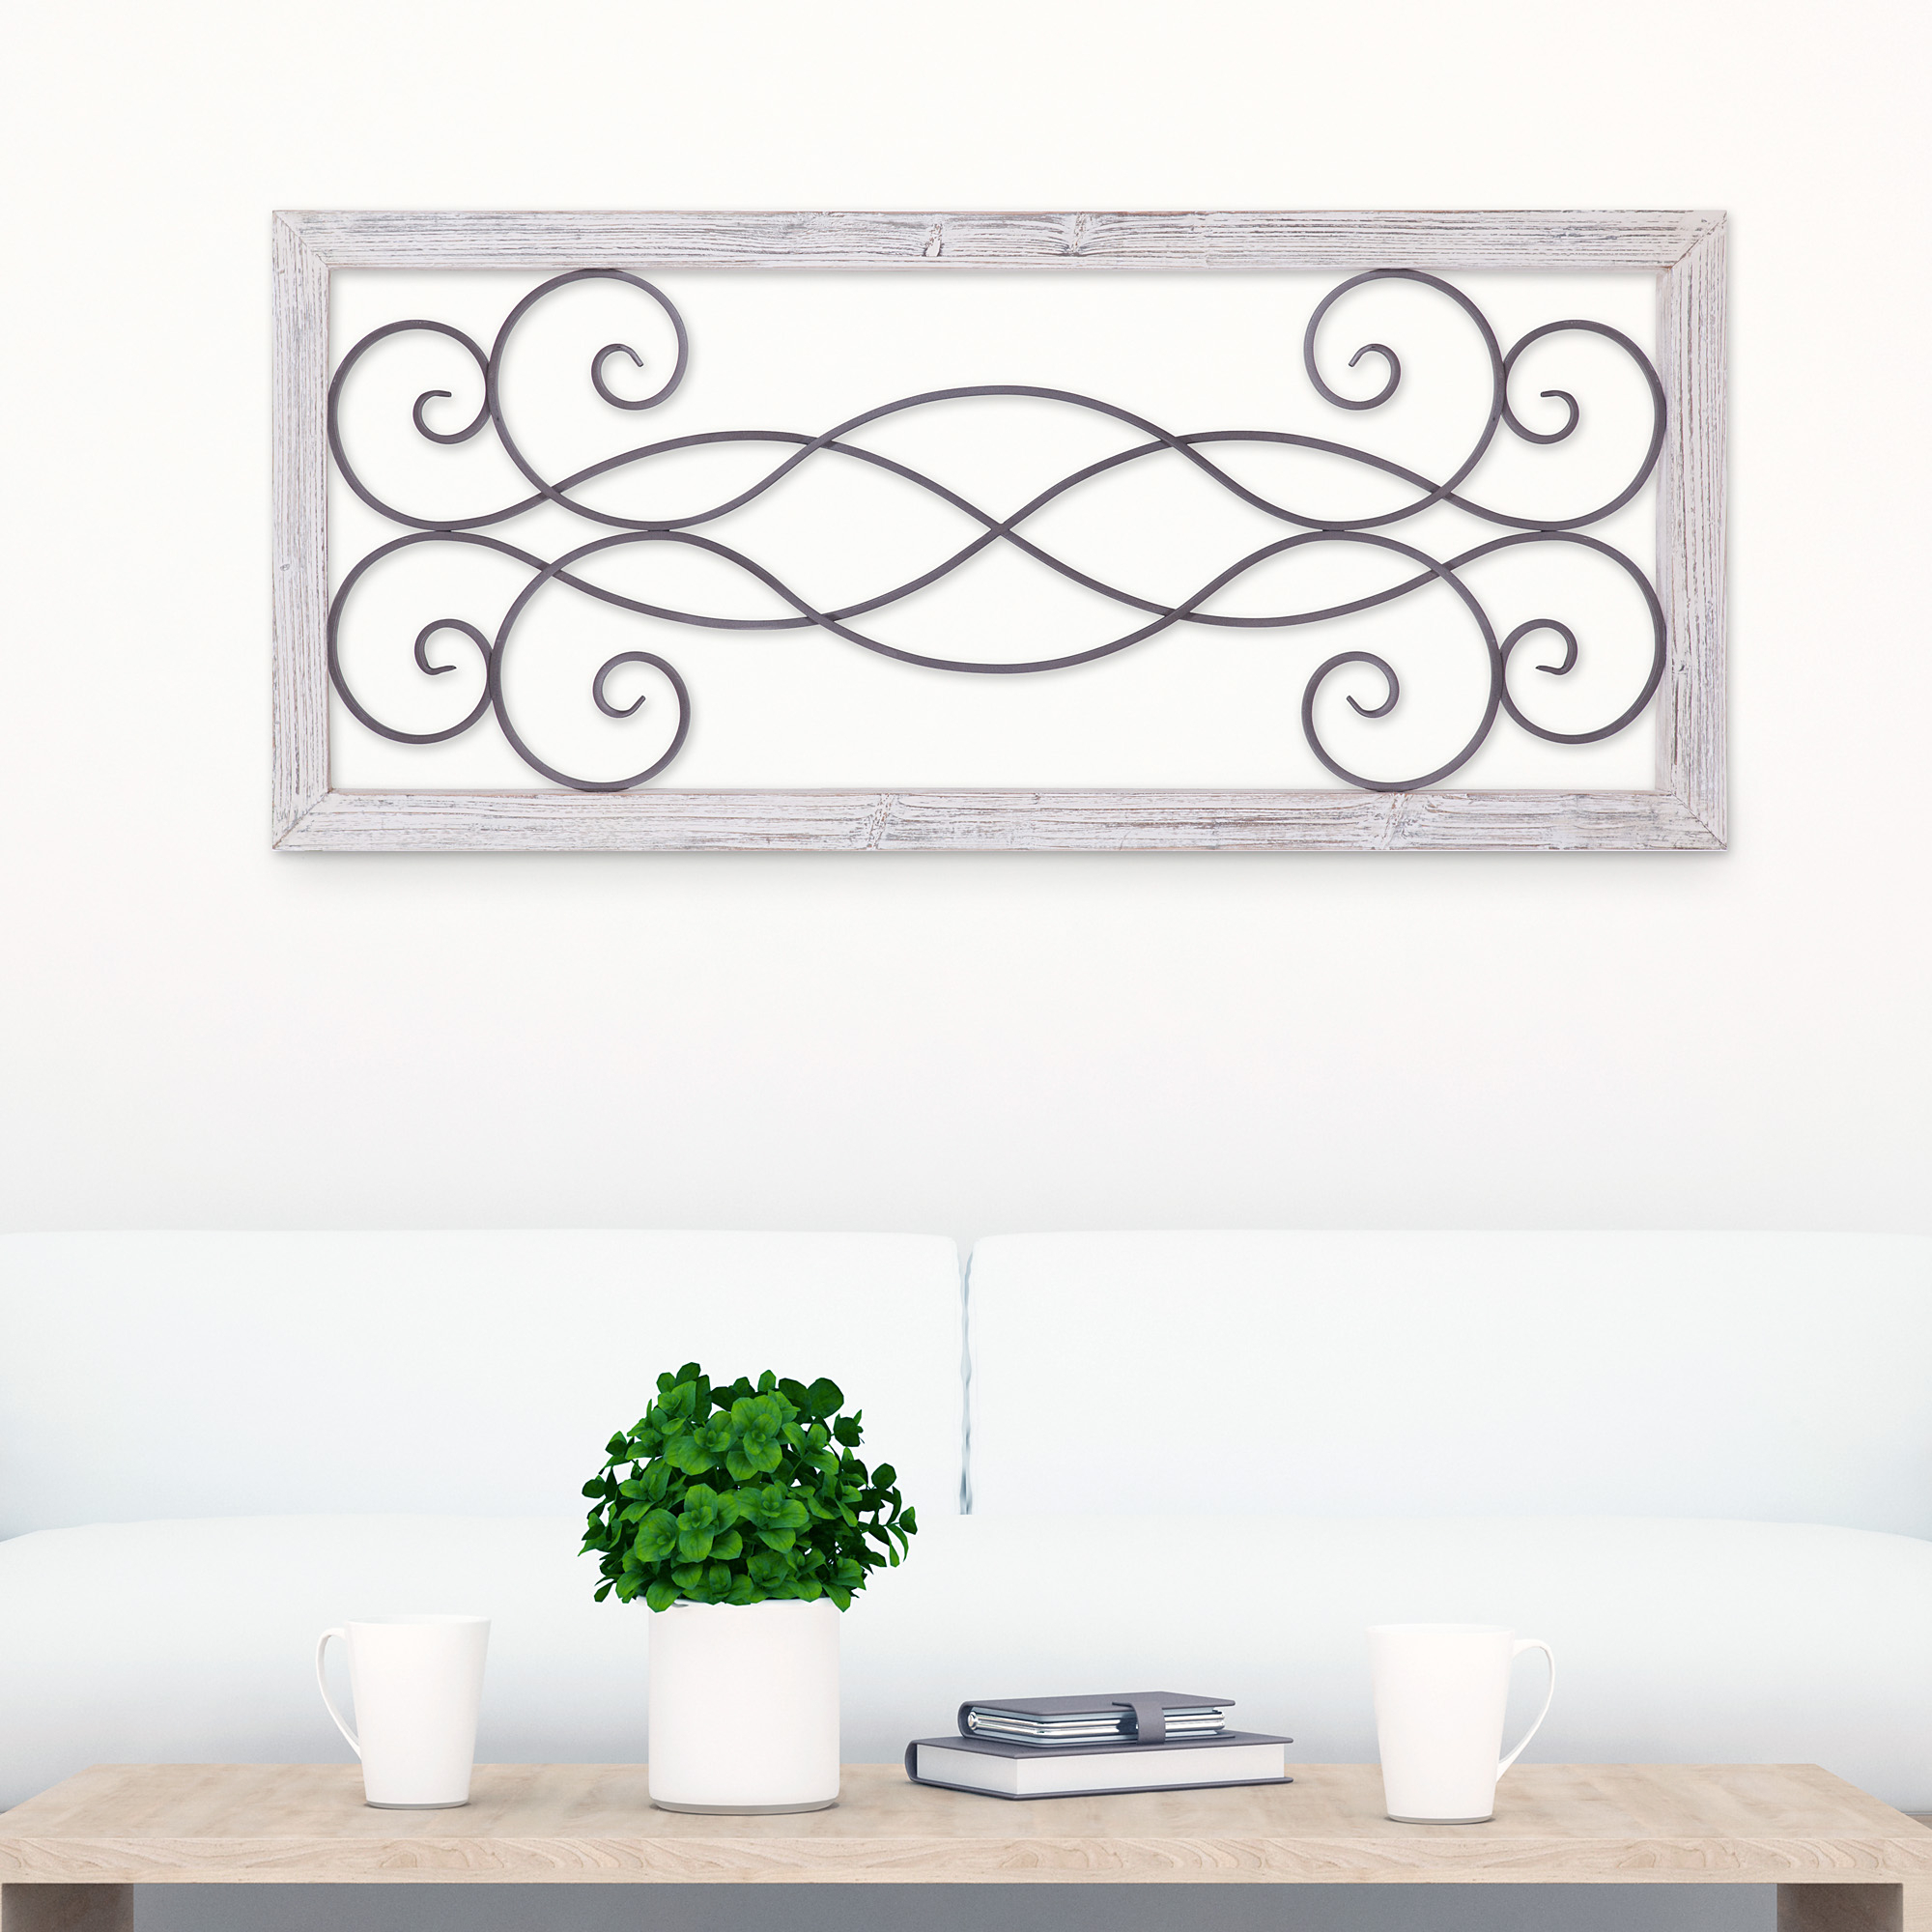 Patton Wall Decor Rustic White Washed Wood And Metal Decorative Scroll Wall  Decor within Scroll Framed Wall Decor (Image 17 of 30)